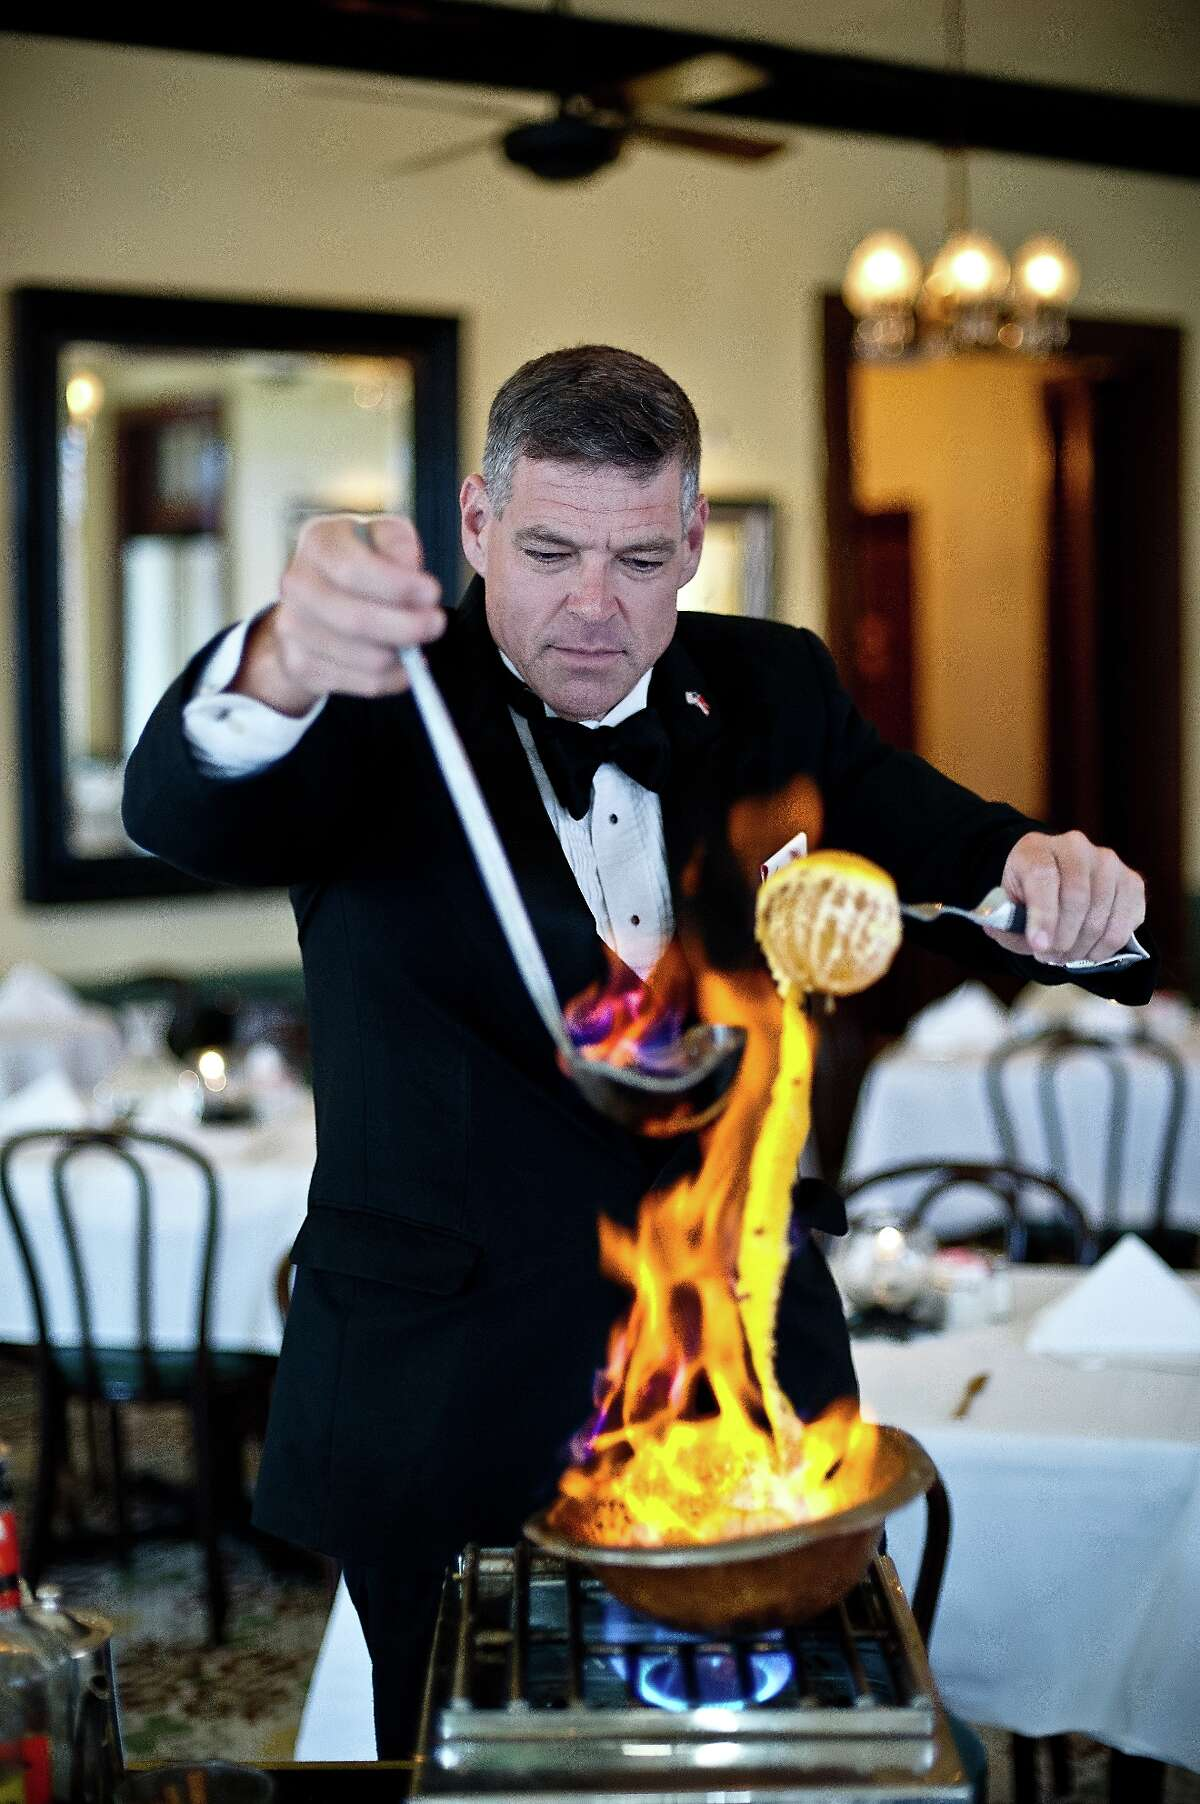 Preparing cafe brulot tableside is a tradition at Arnaud's Restaurant, New Orleans, marking its 100th anniversary in 2018.